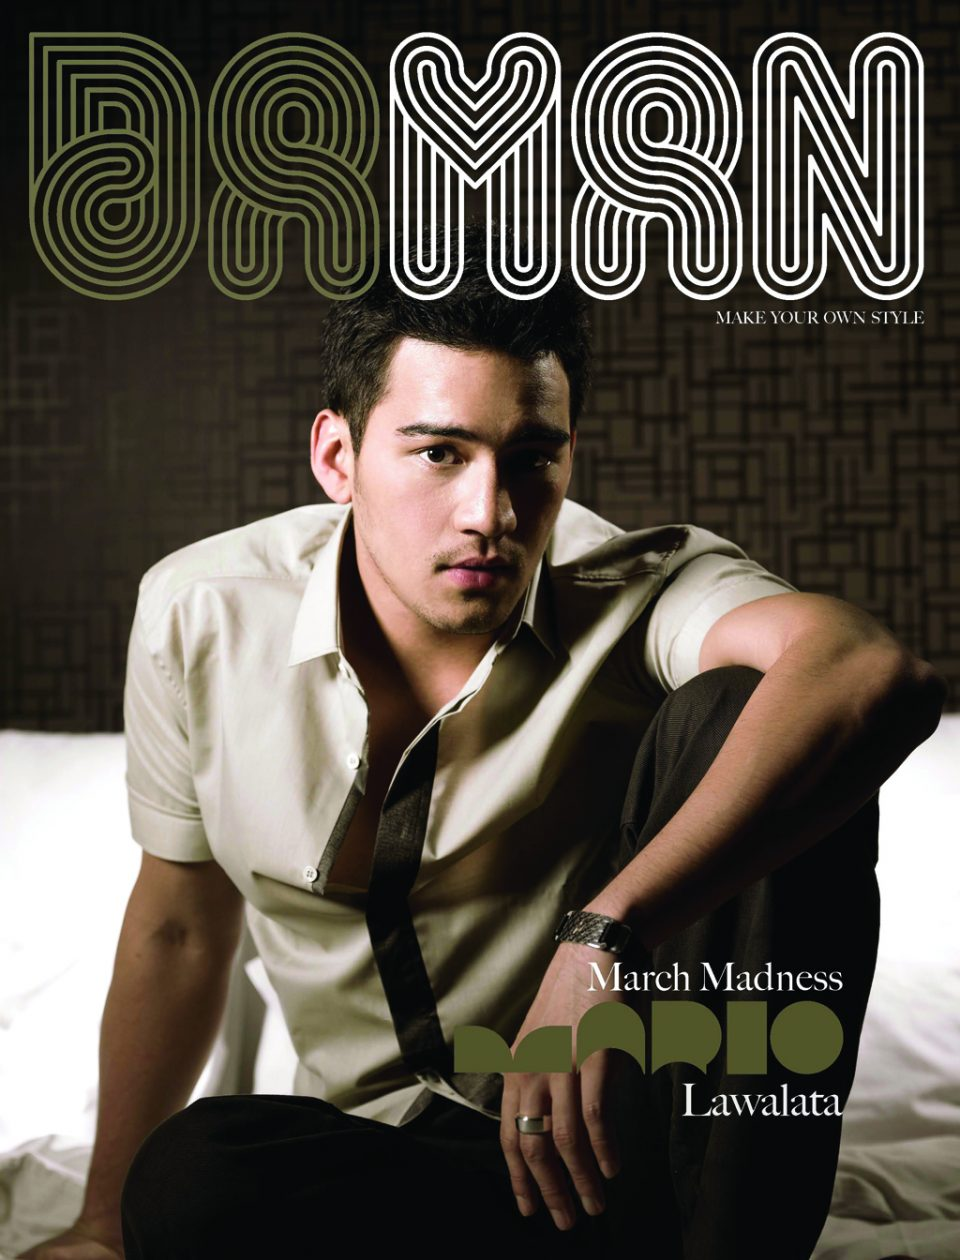 Cover DA MAN Mar 2008